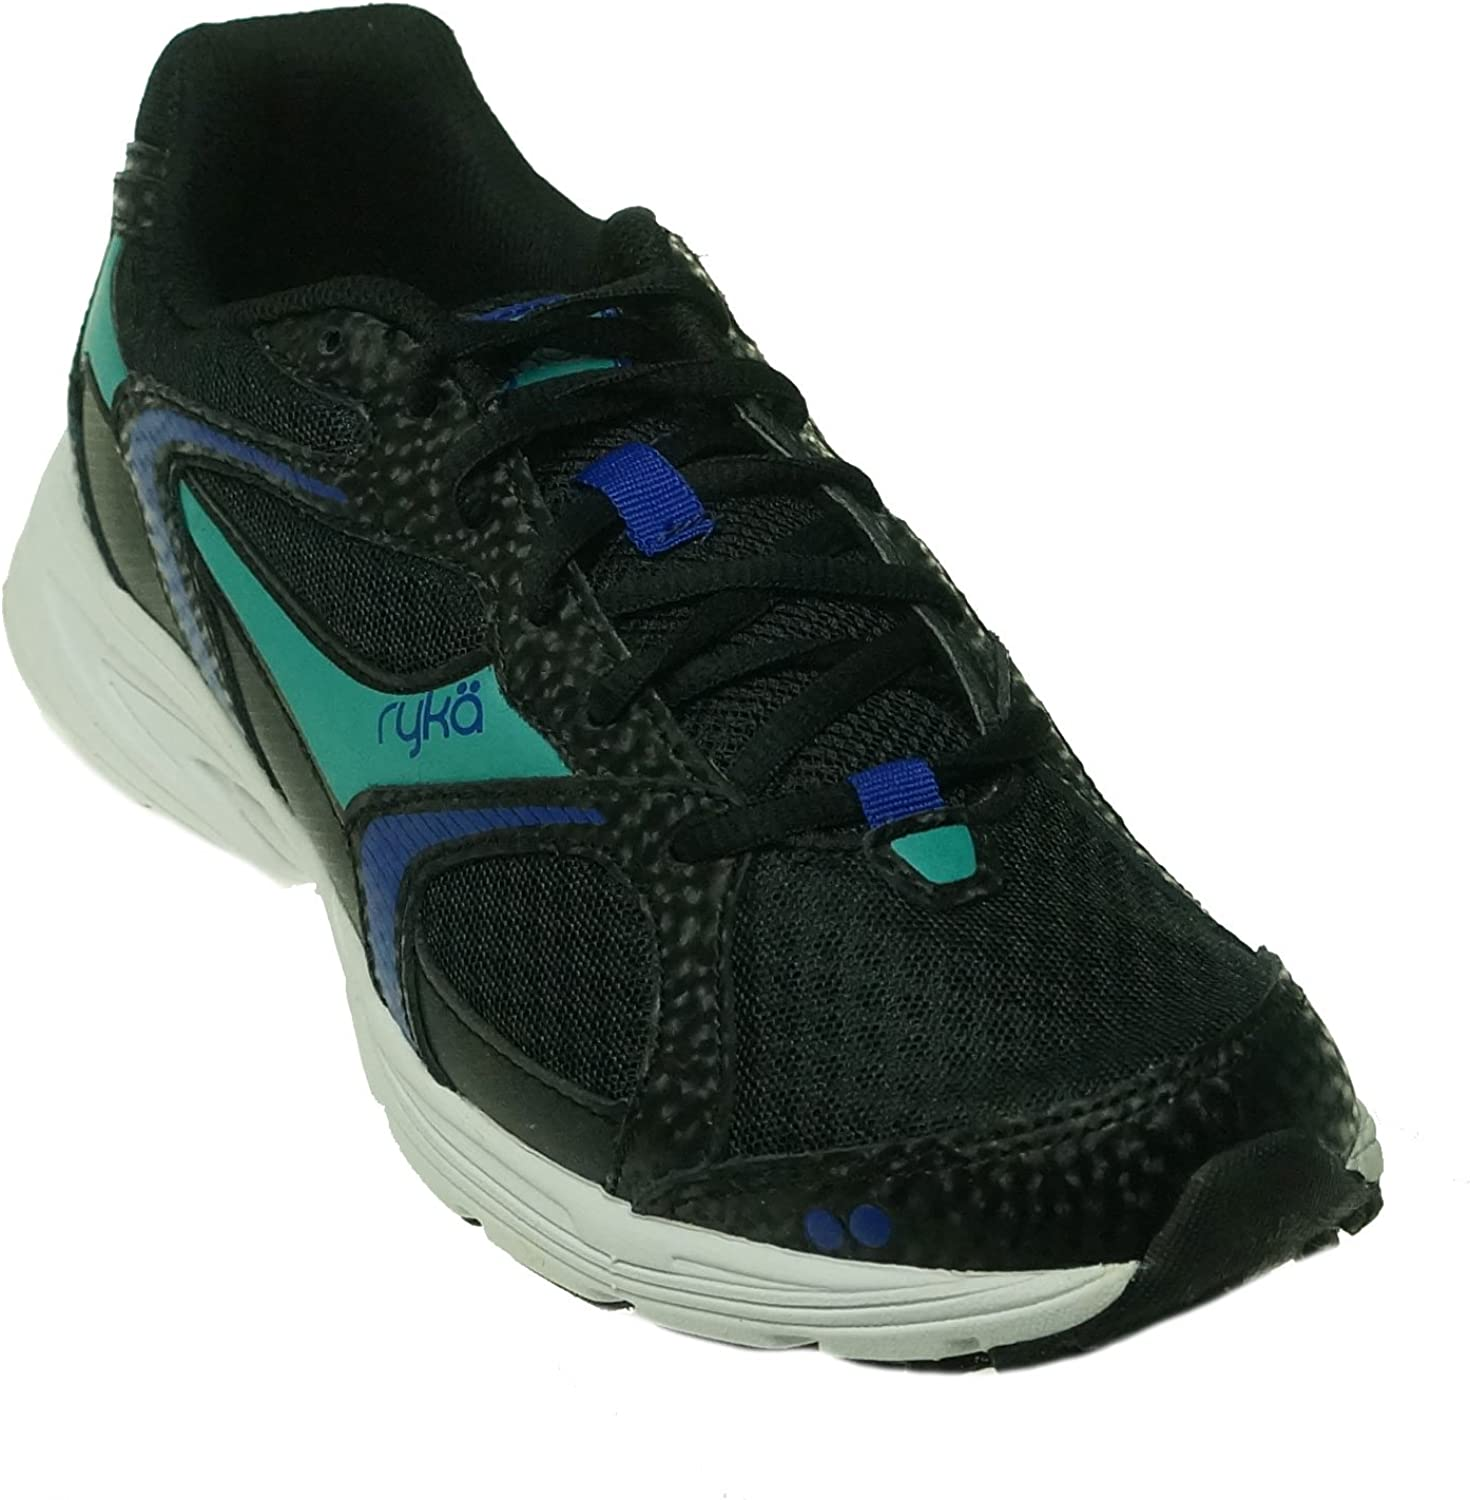 Ryka Streak SMR Women Walking Shoe Black Blue, 7